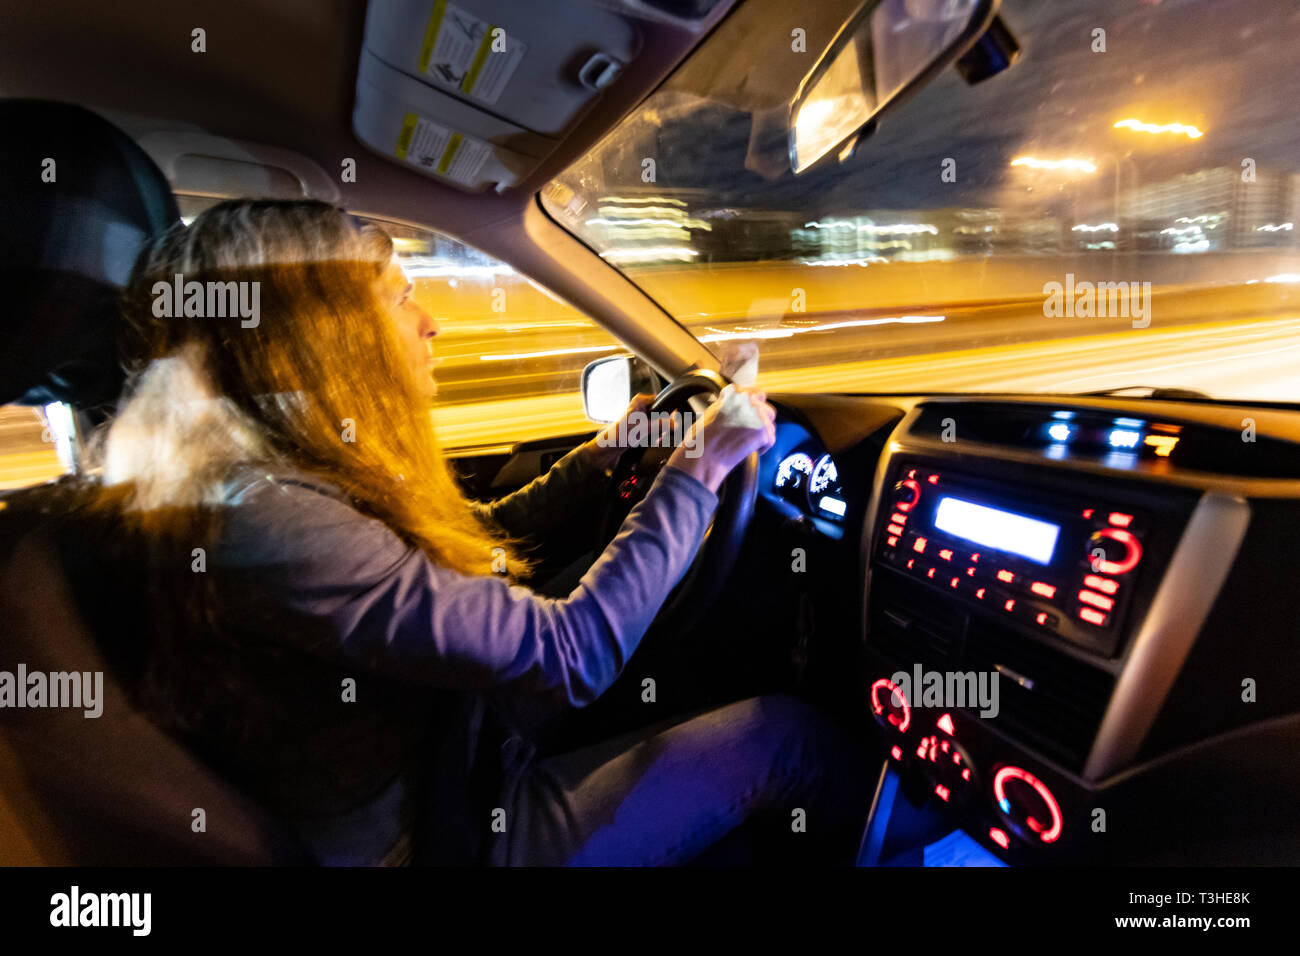 WA17077-00...WASHINGTON - Woman driving Interstate 5 at night near Seattle. (MR# S1) - Stock Image